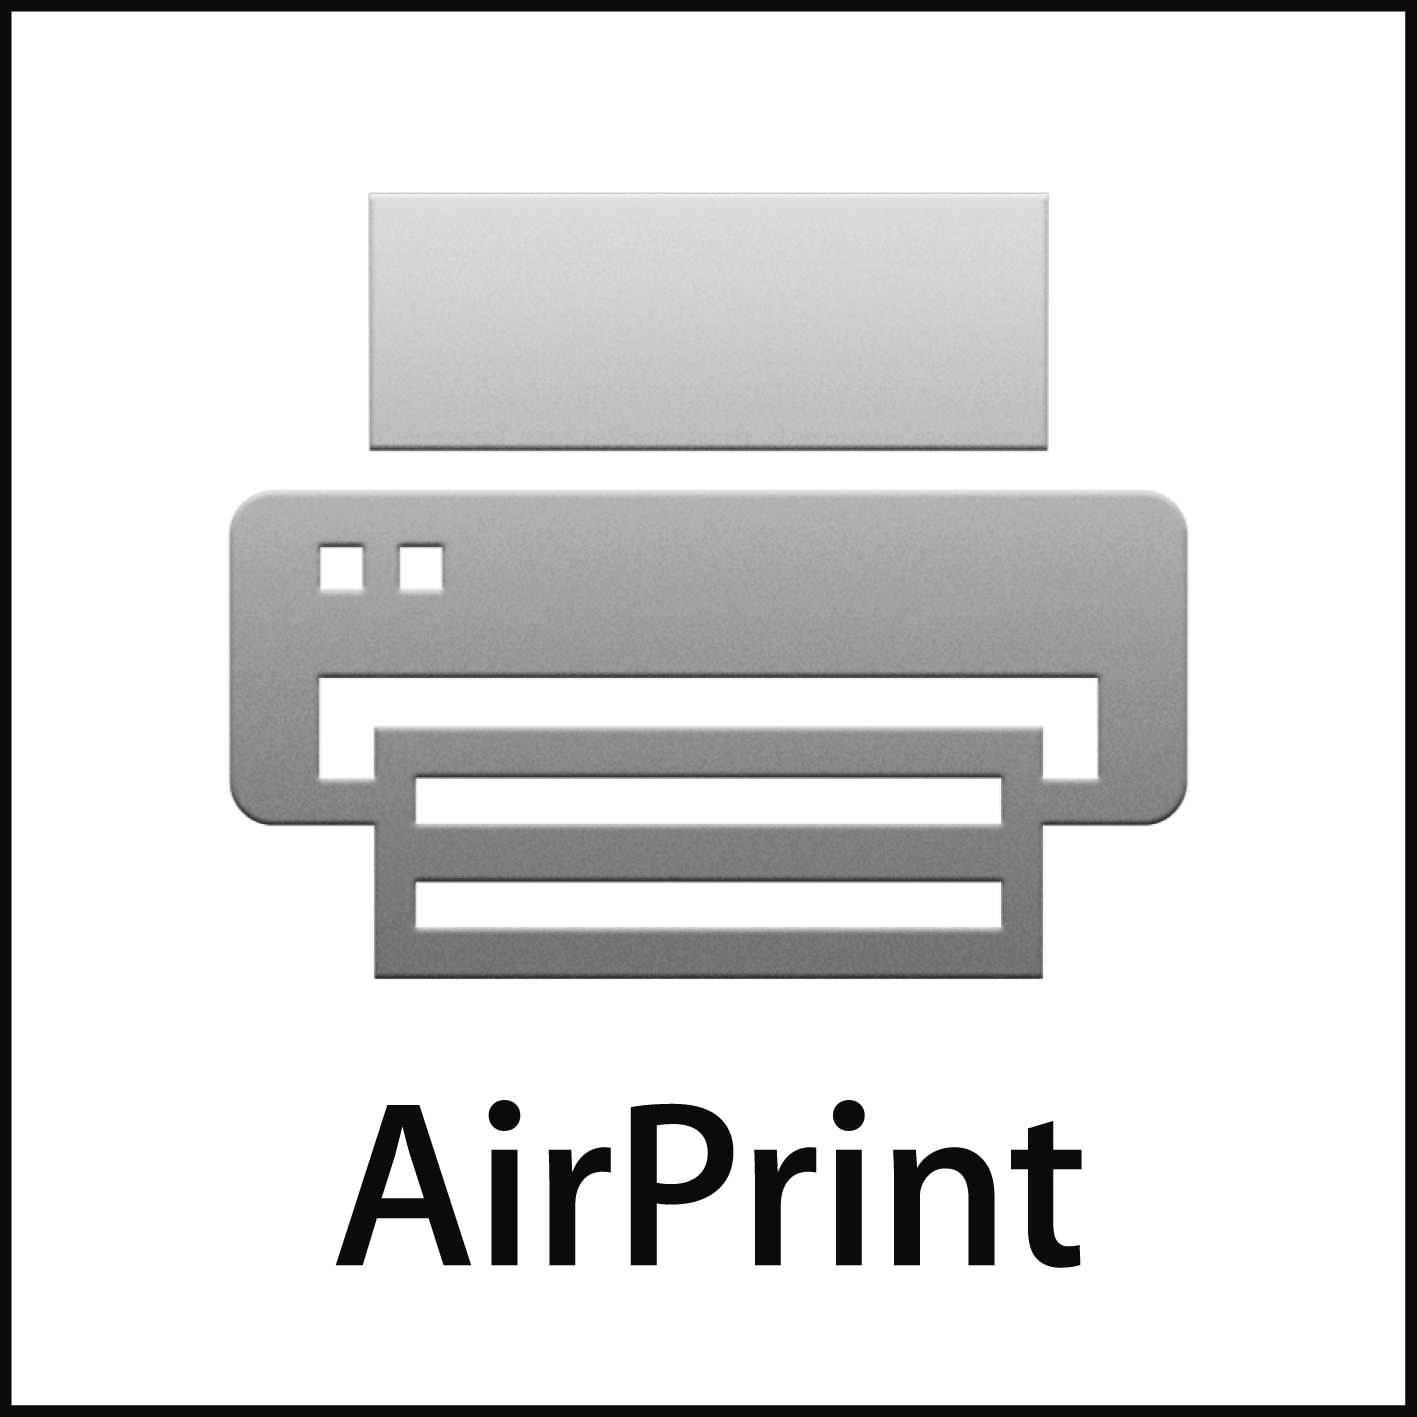 KHWhVaC-airprint-logo-grayscale-60mm.png